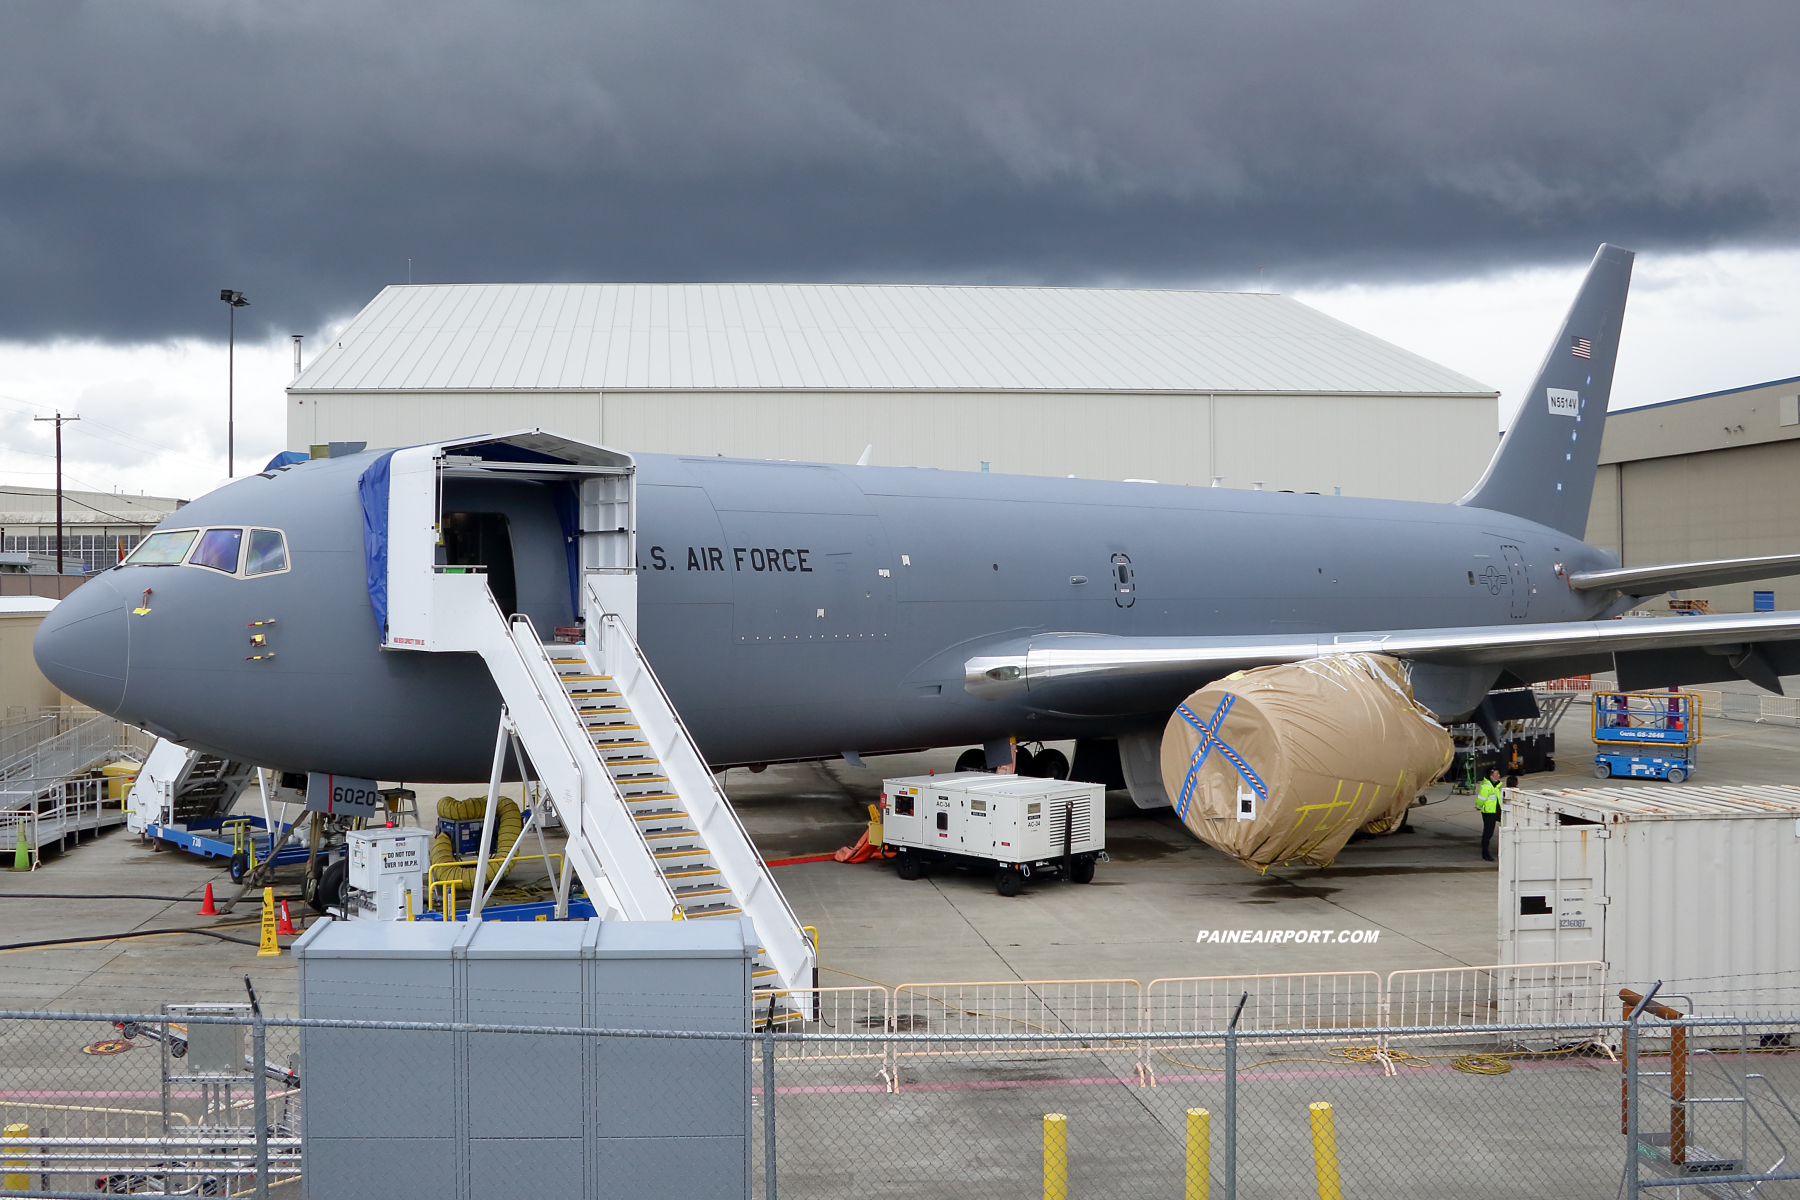 KC-46A 16-46020 at KPAE Paine Field